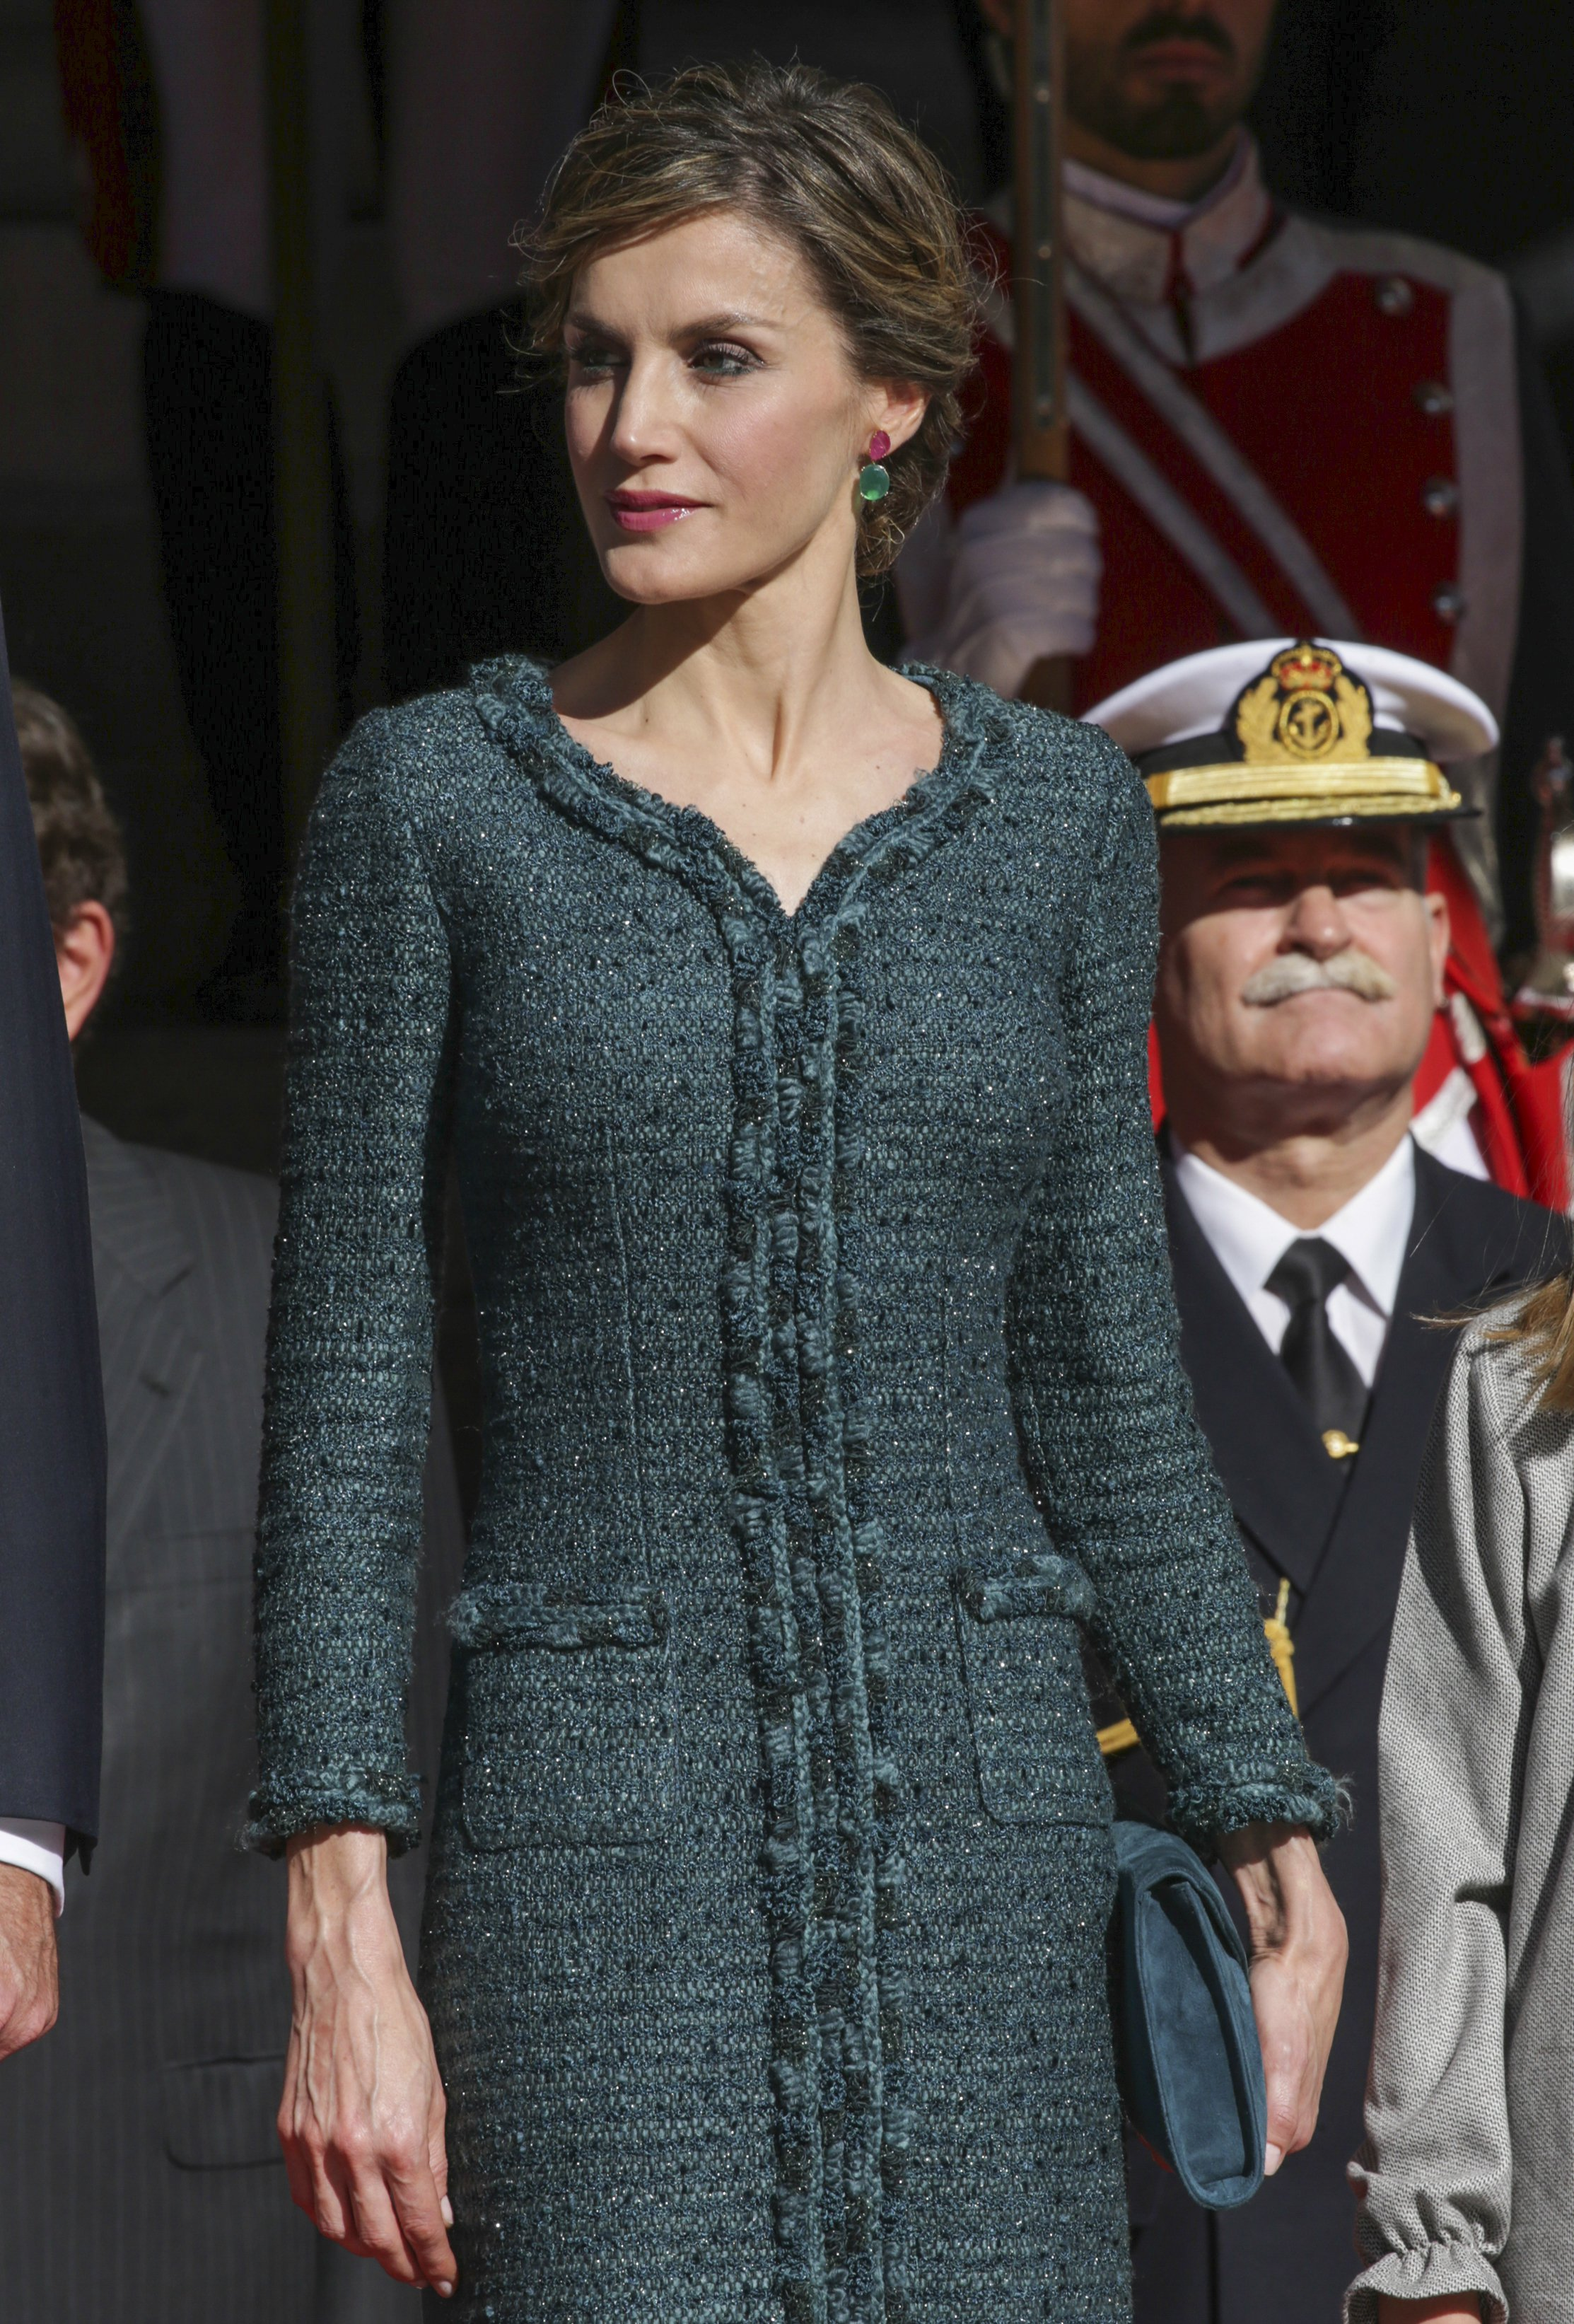 Queen Letizia of Spain during the opening ceremony of the XII Legislature in the Congress of Deputies in Madrid, Spain, Thursday, Nov. 17, 2016.